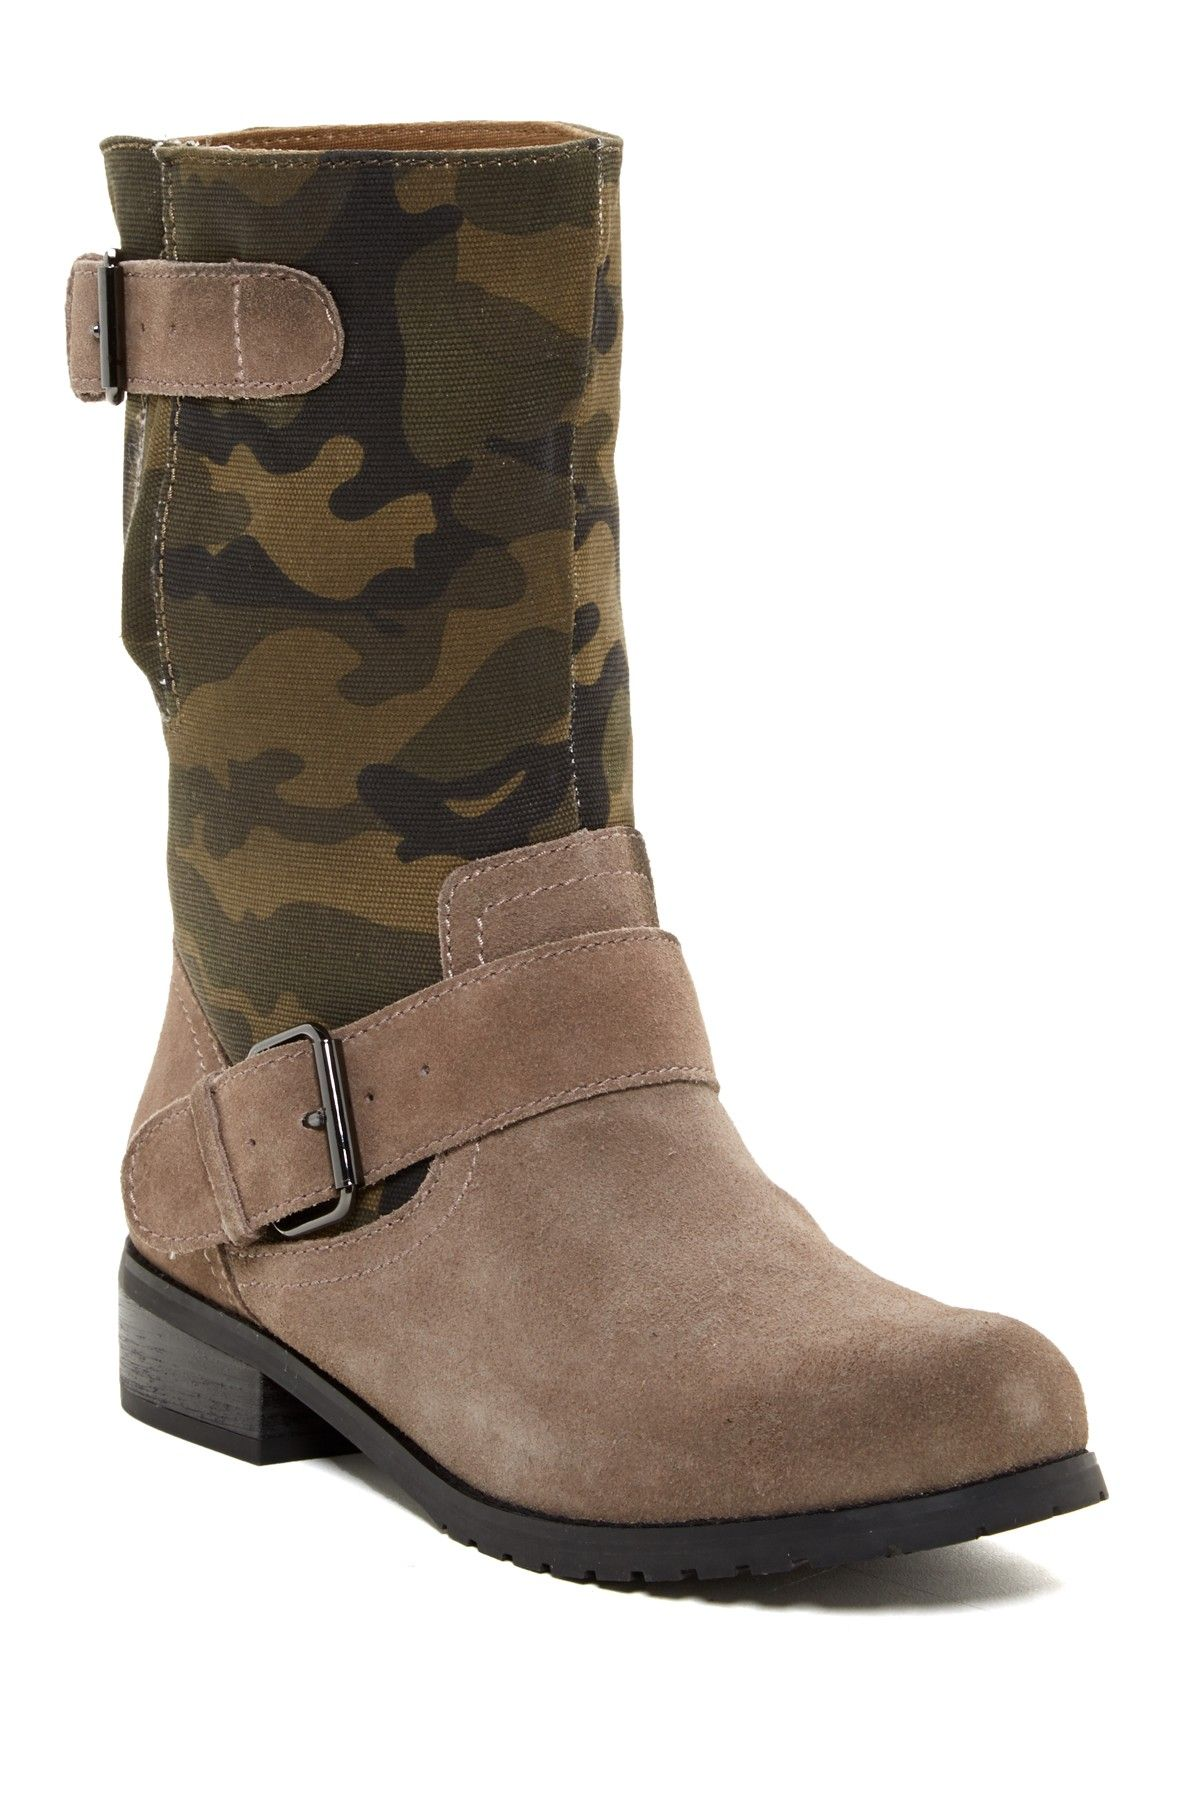 HauteLook BC Footwear I'm With The Band Boot Boots